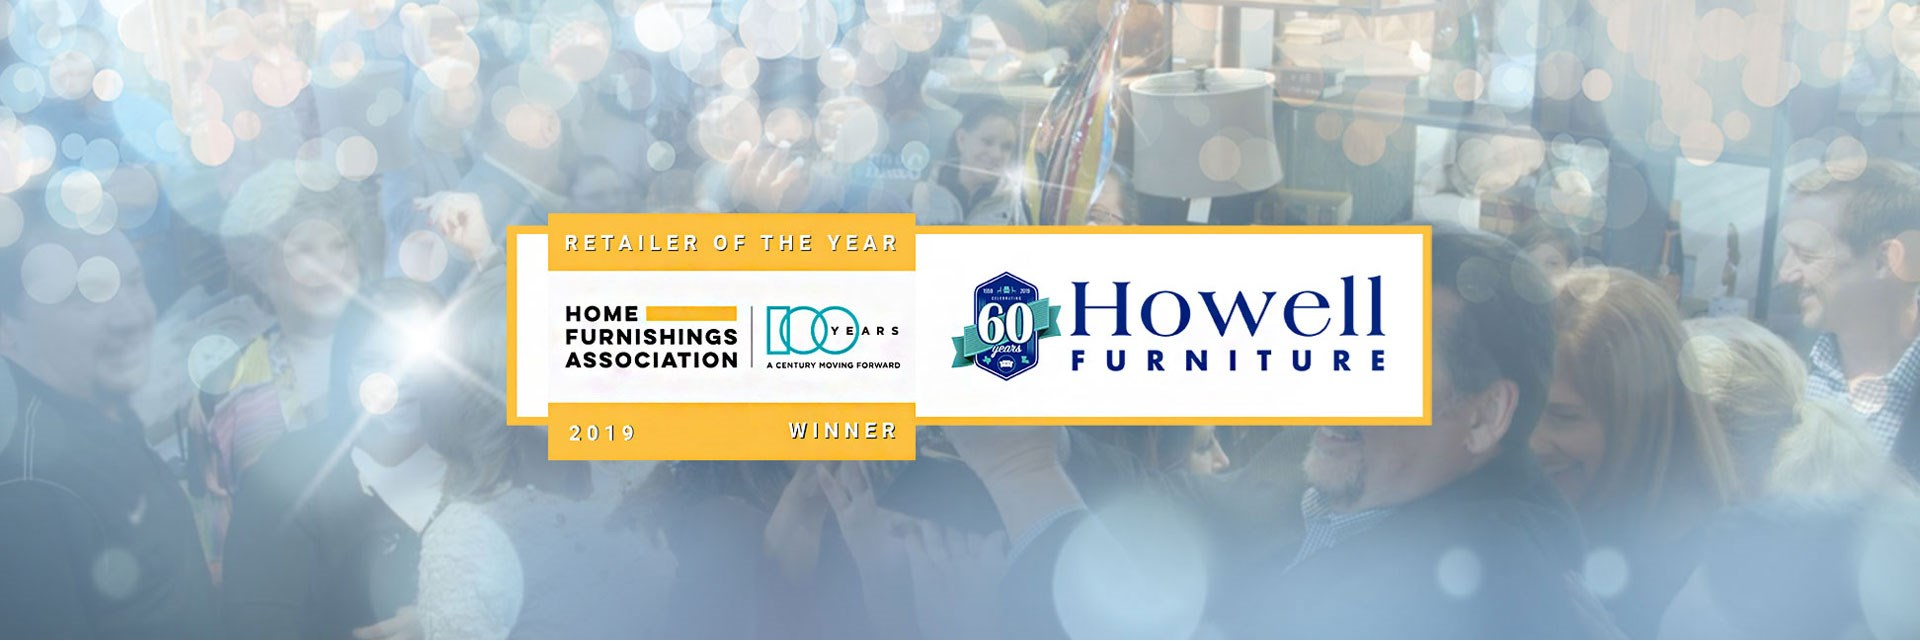 Howell Furniture awarded 2019 Retailer of the year by home furnishings association